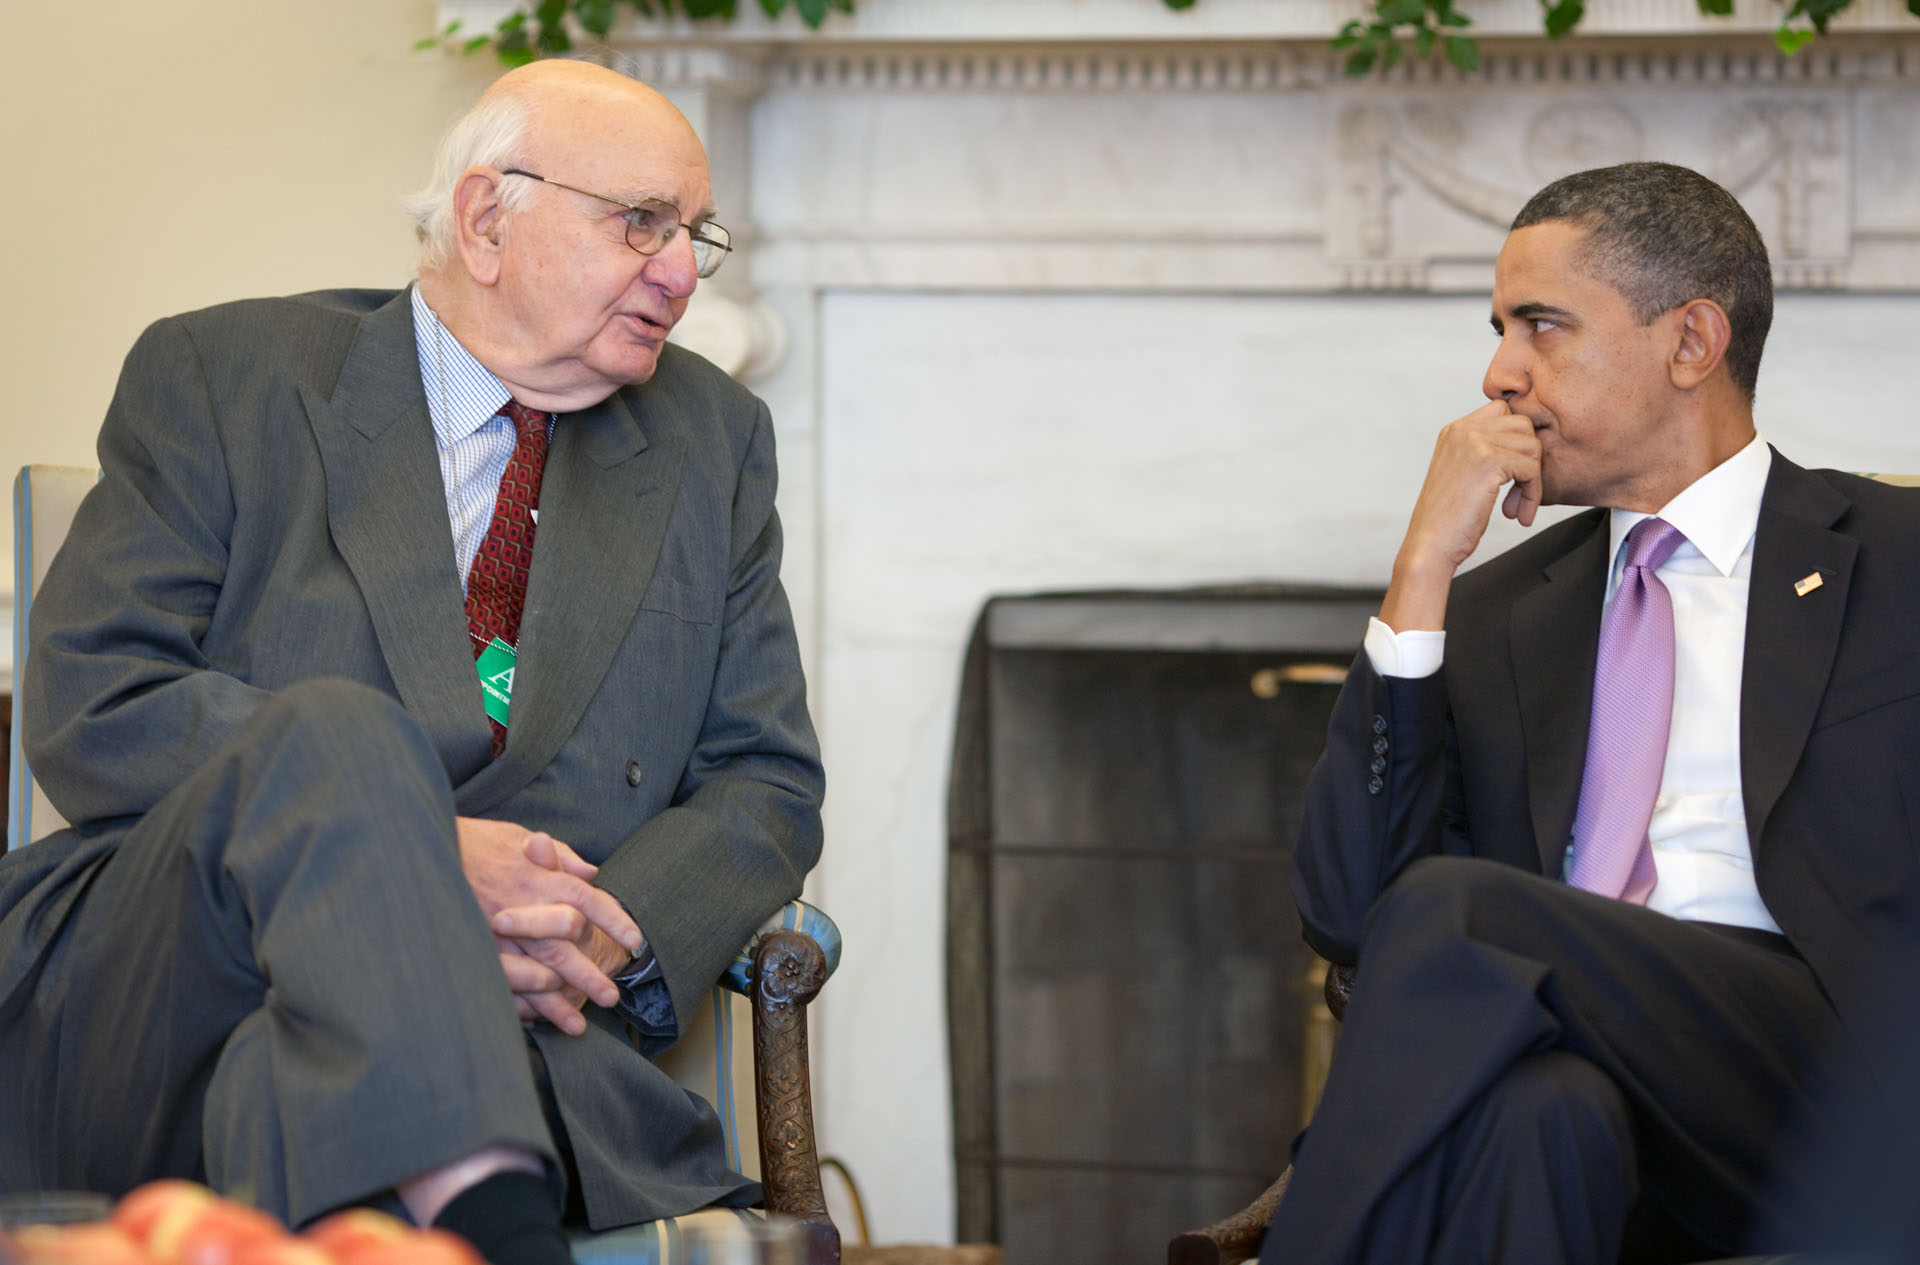 The President Meets with Paul Volcker Before Announcing